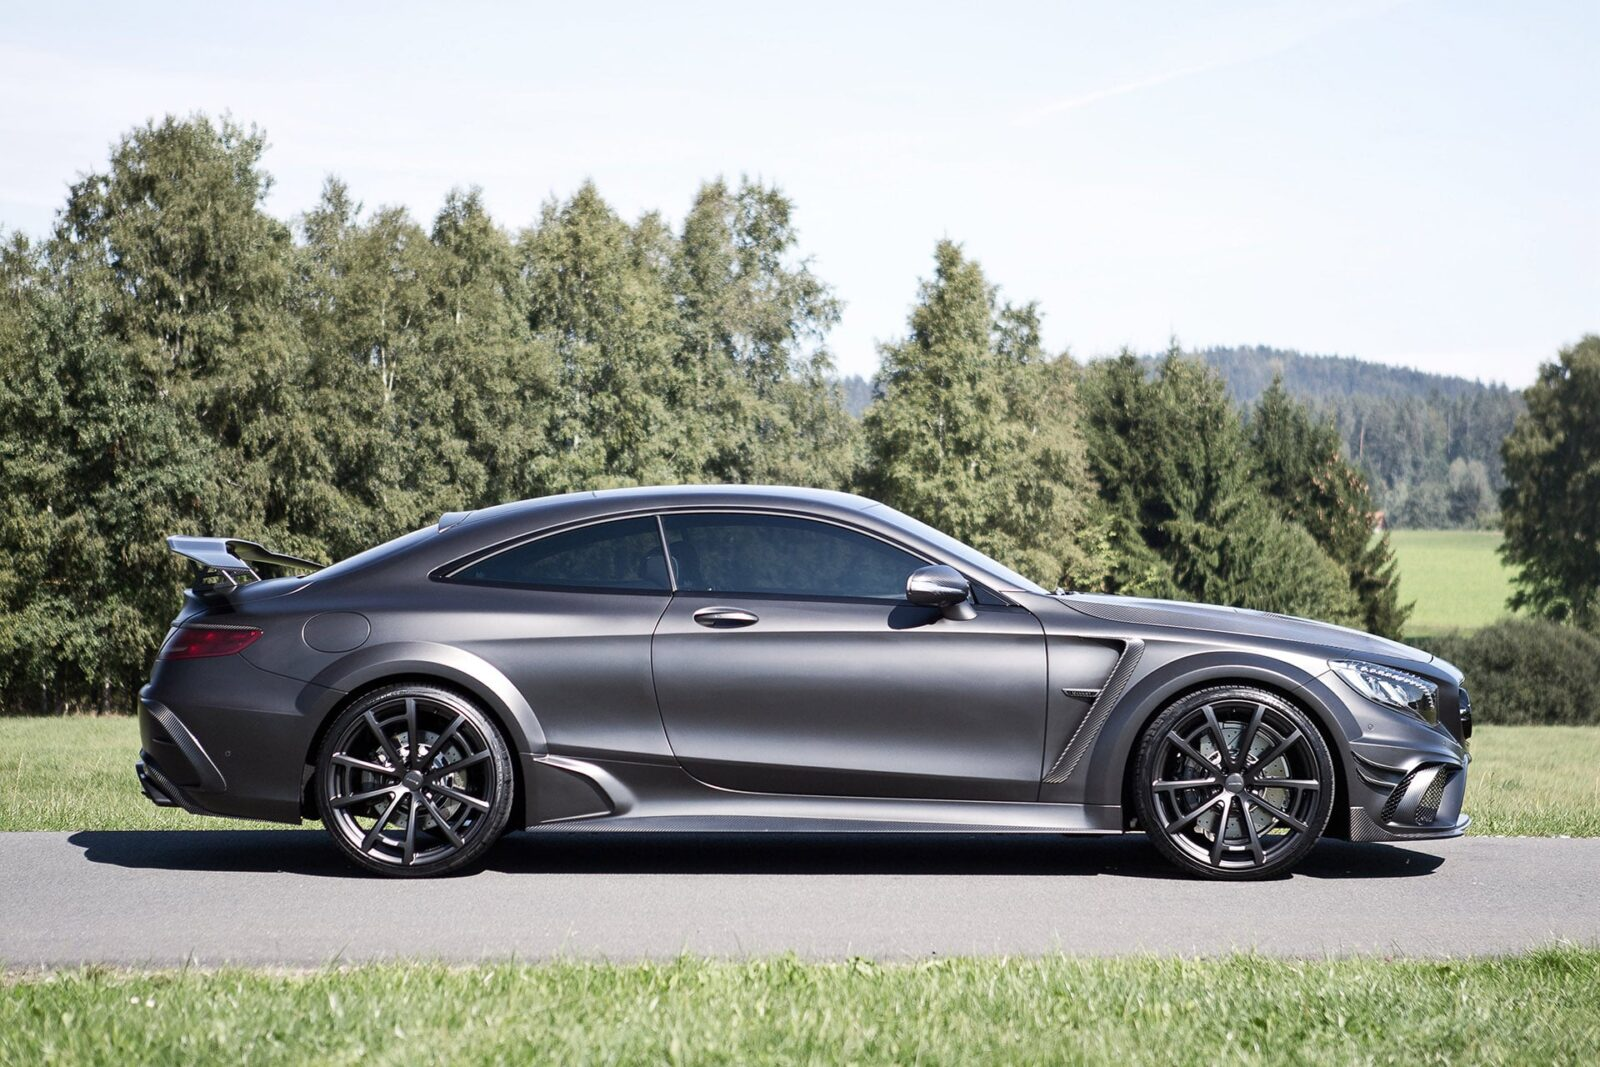 mercedes benz amg s63 coupe wallpapers hd download. Black Bedroom Furniture Sets. Home Design Ideas